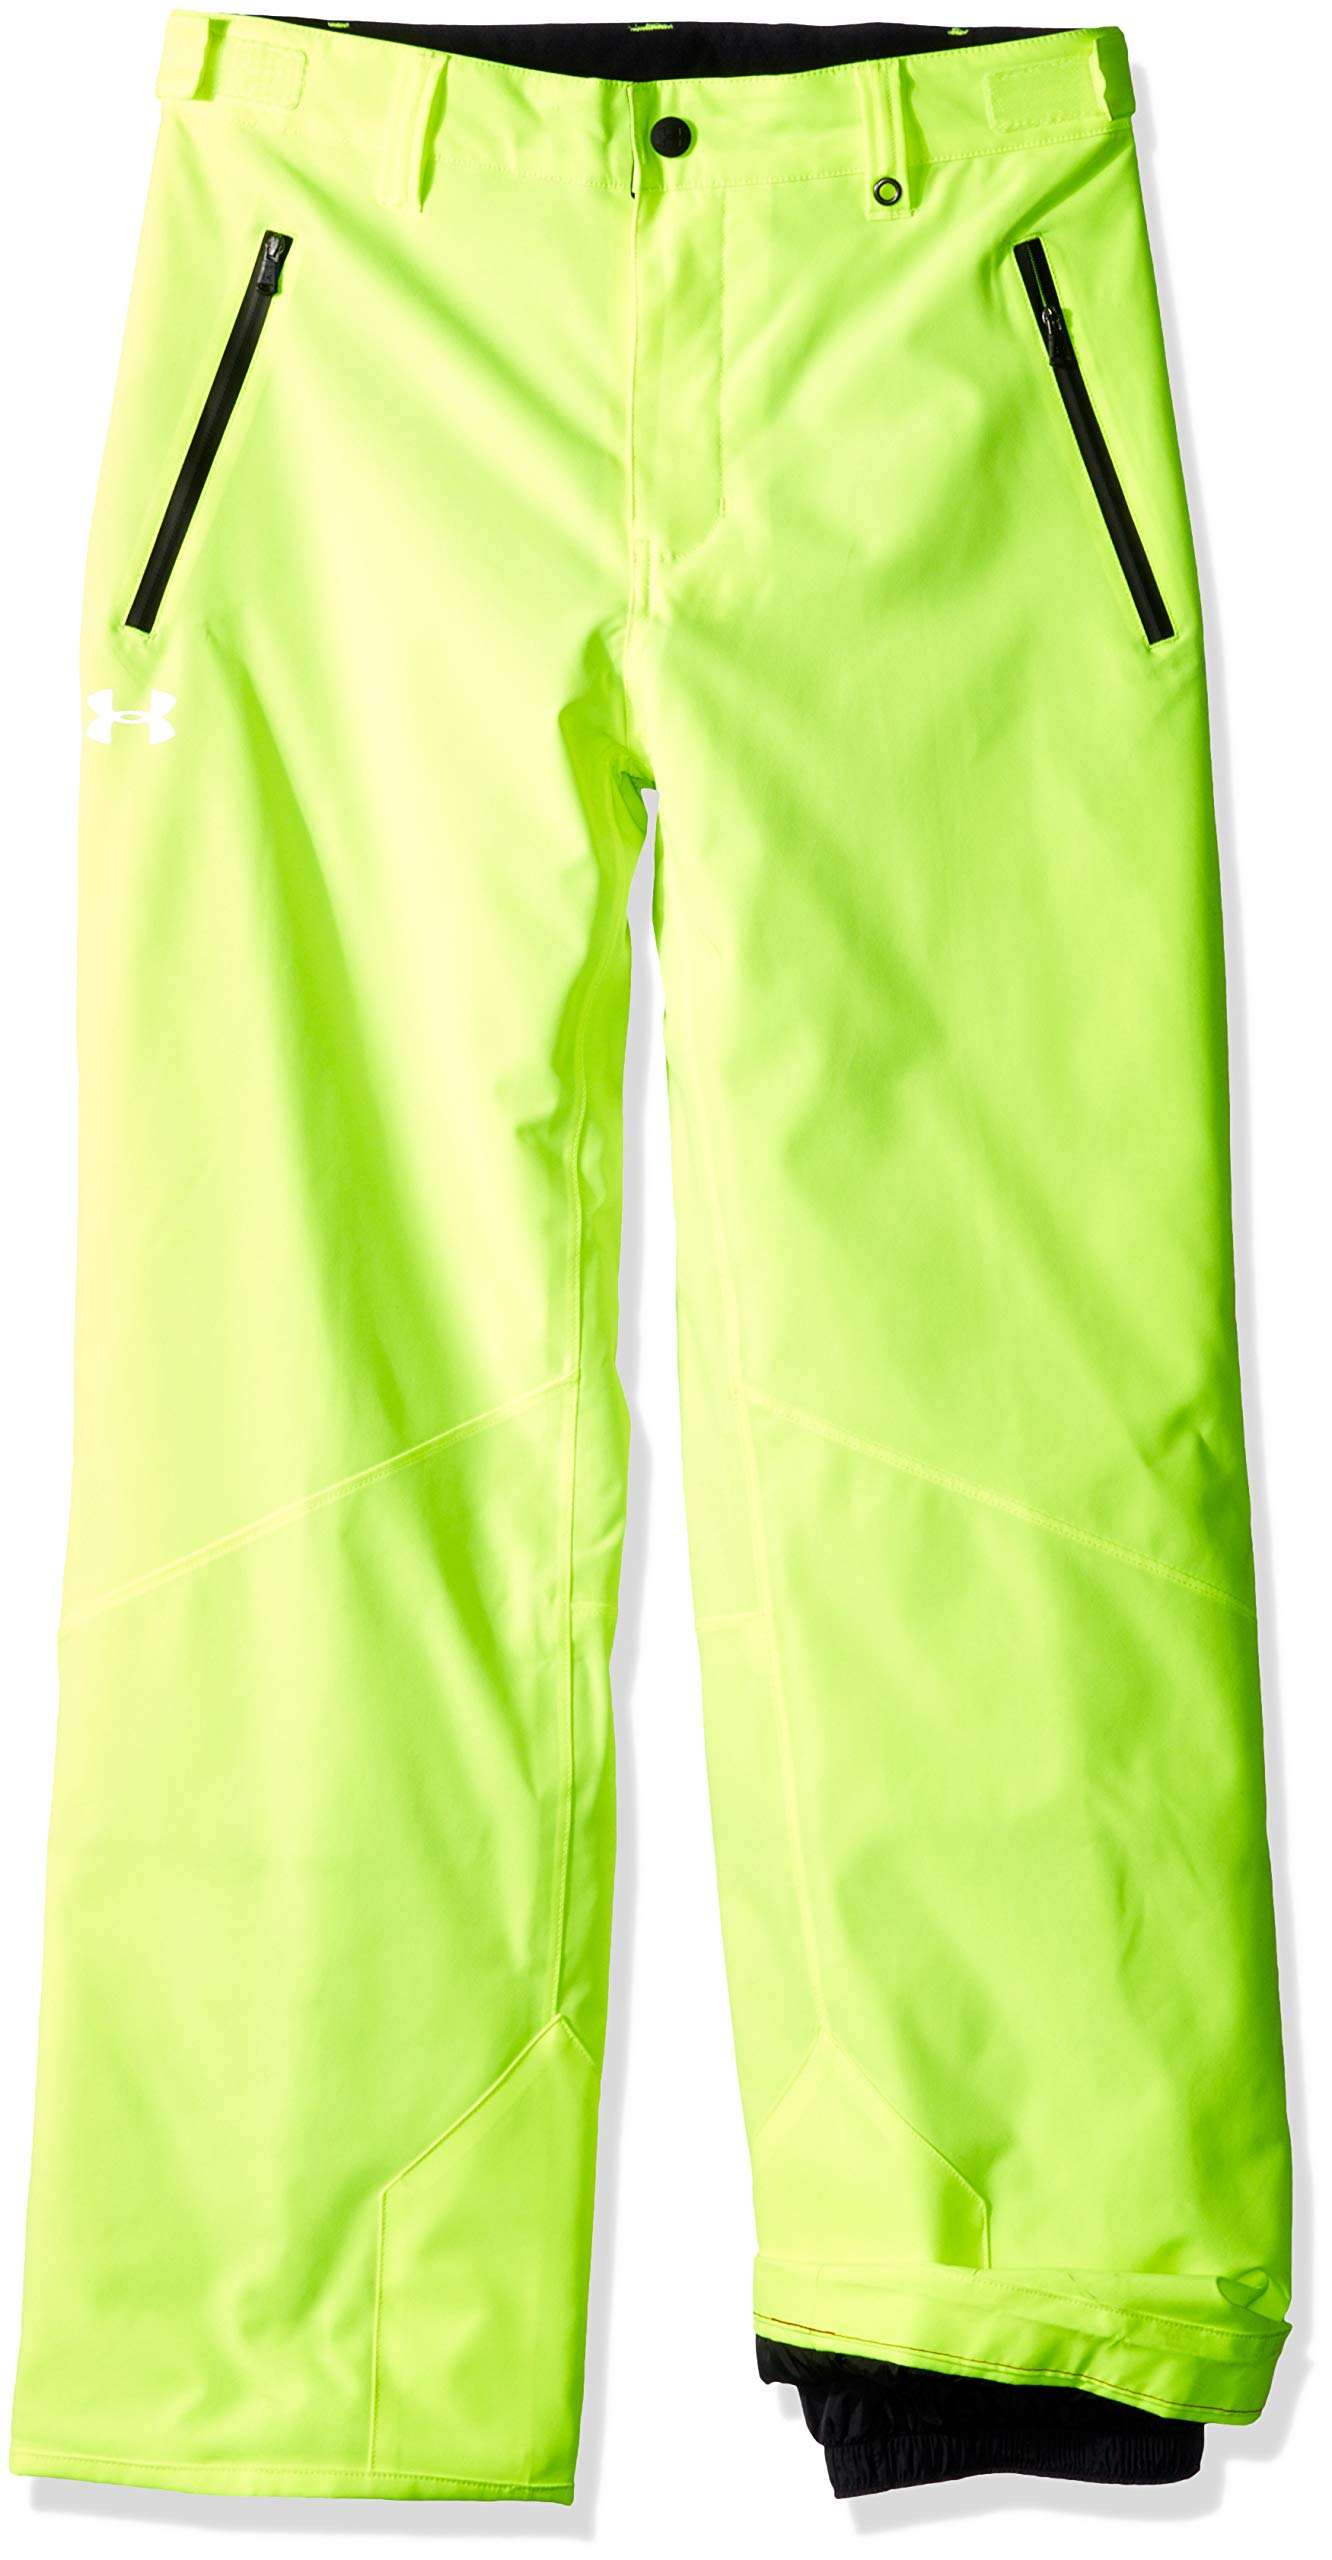 Under Armour Boys' Big Rooter Insulated Pant, hi gh/vis Yellow, Small (8) by Under Armour